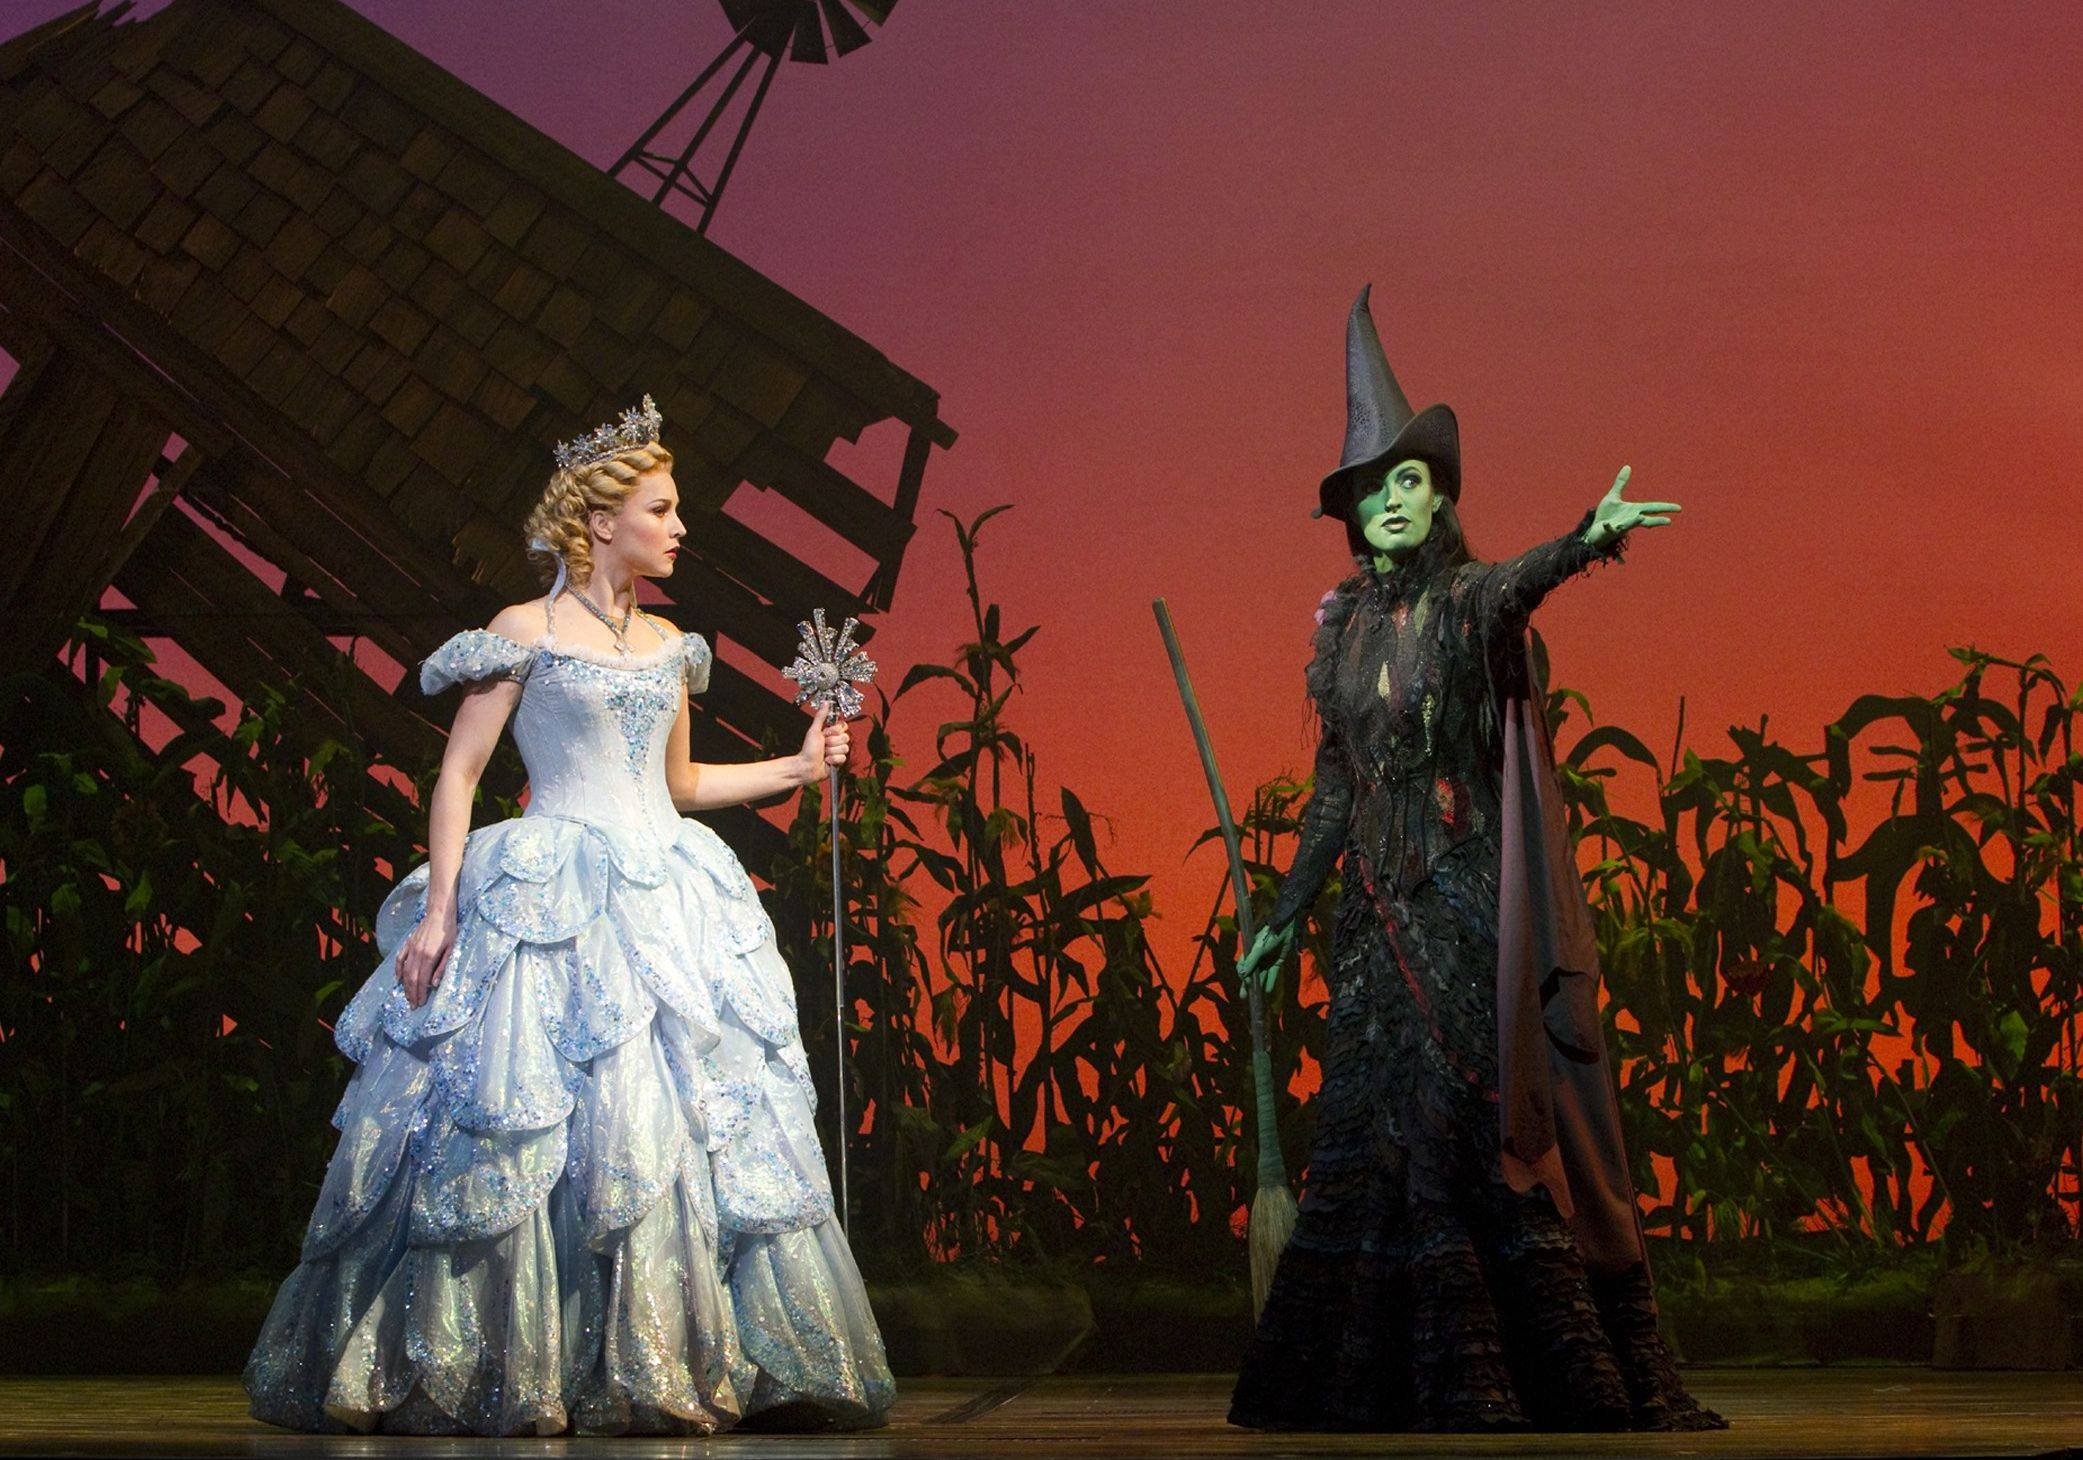 The Oz witches Glinda (Chandra Lee Schwartz) and Elphaba (Jackie Burns) get into a major spat after Dorothy Gale�s house crash lands in Munchkinland, in Broadway in Chicago�s 2010 production of the blockbuster musical �Wicked.� The show returns to Chicago Oct. 30 for a limited run.